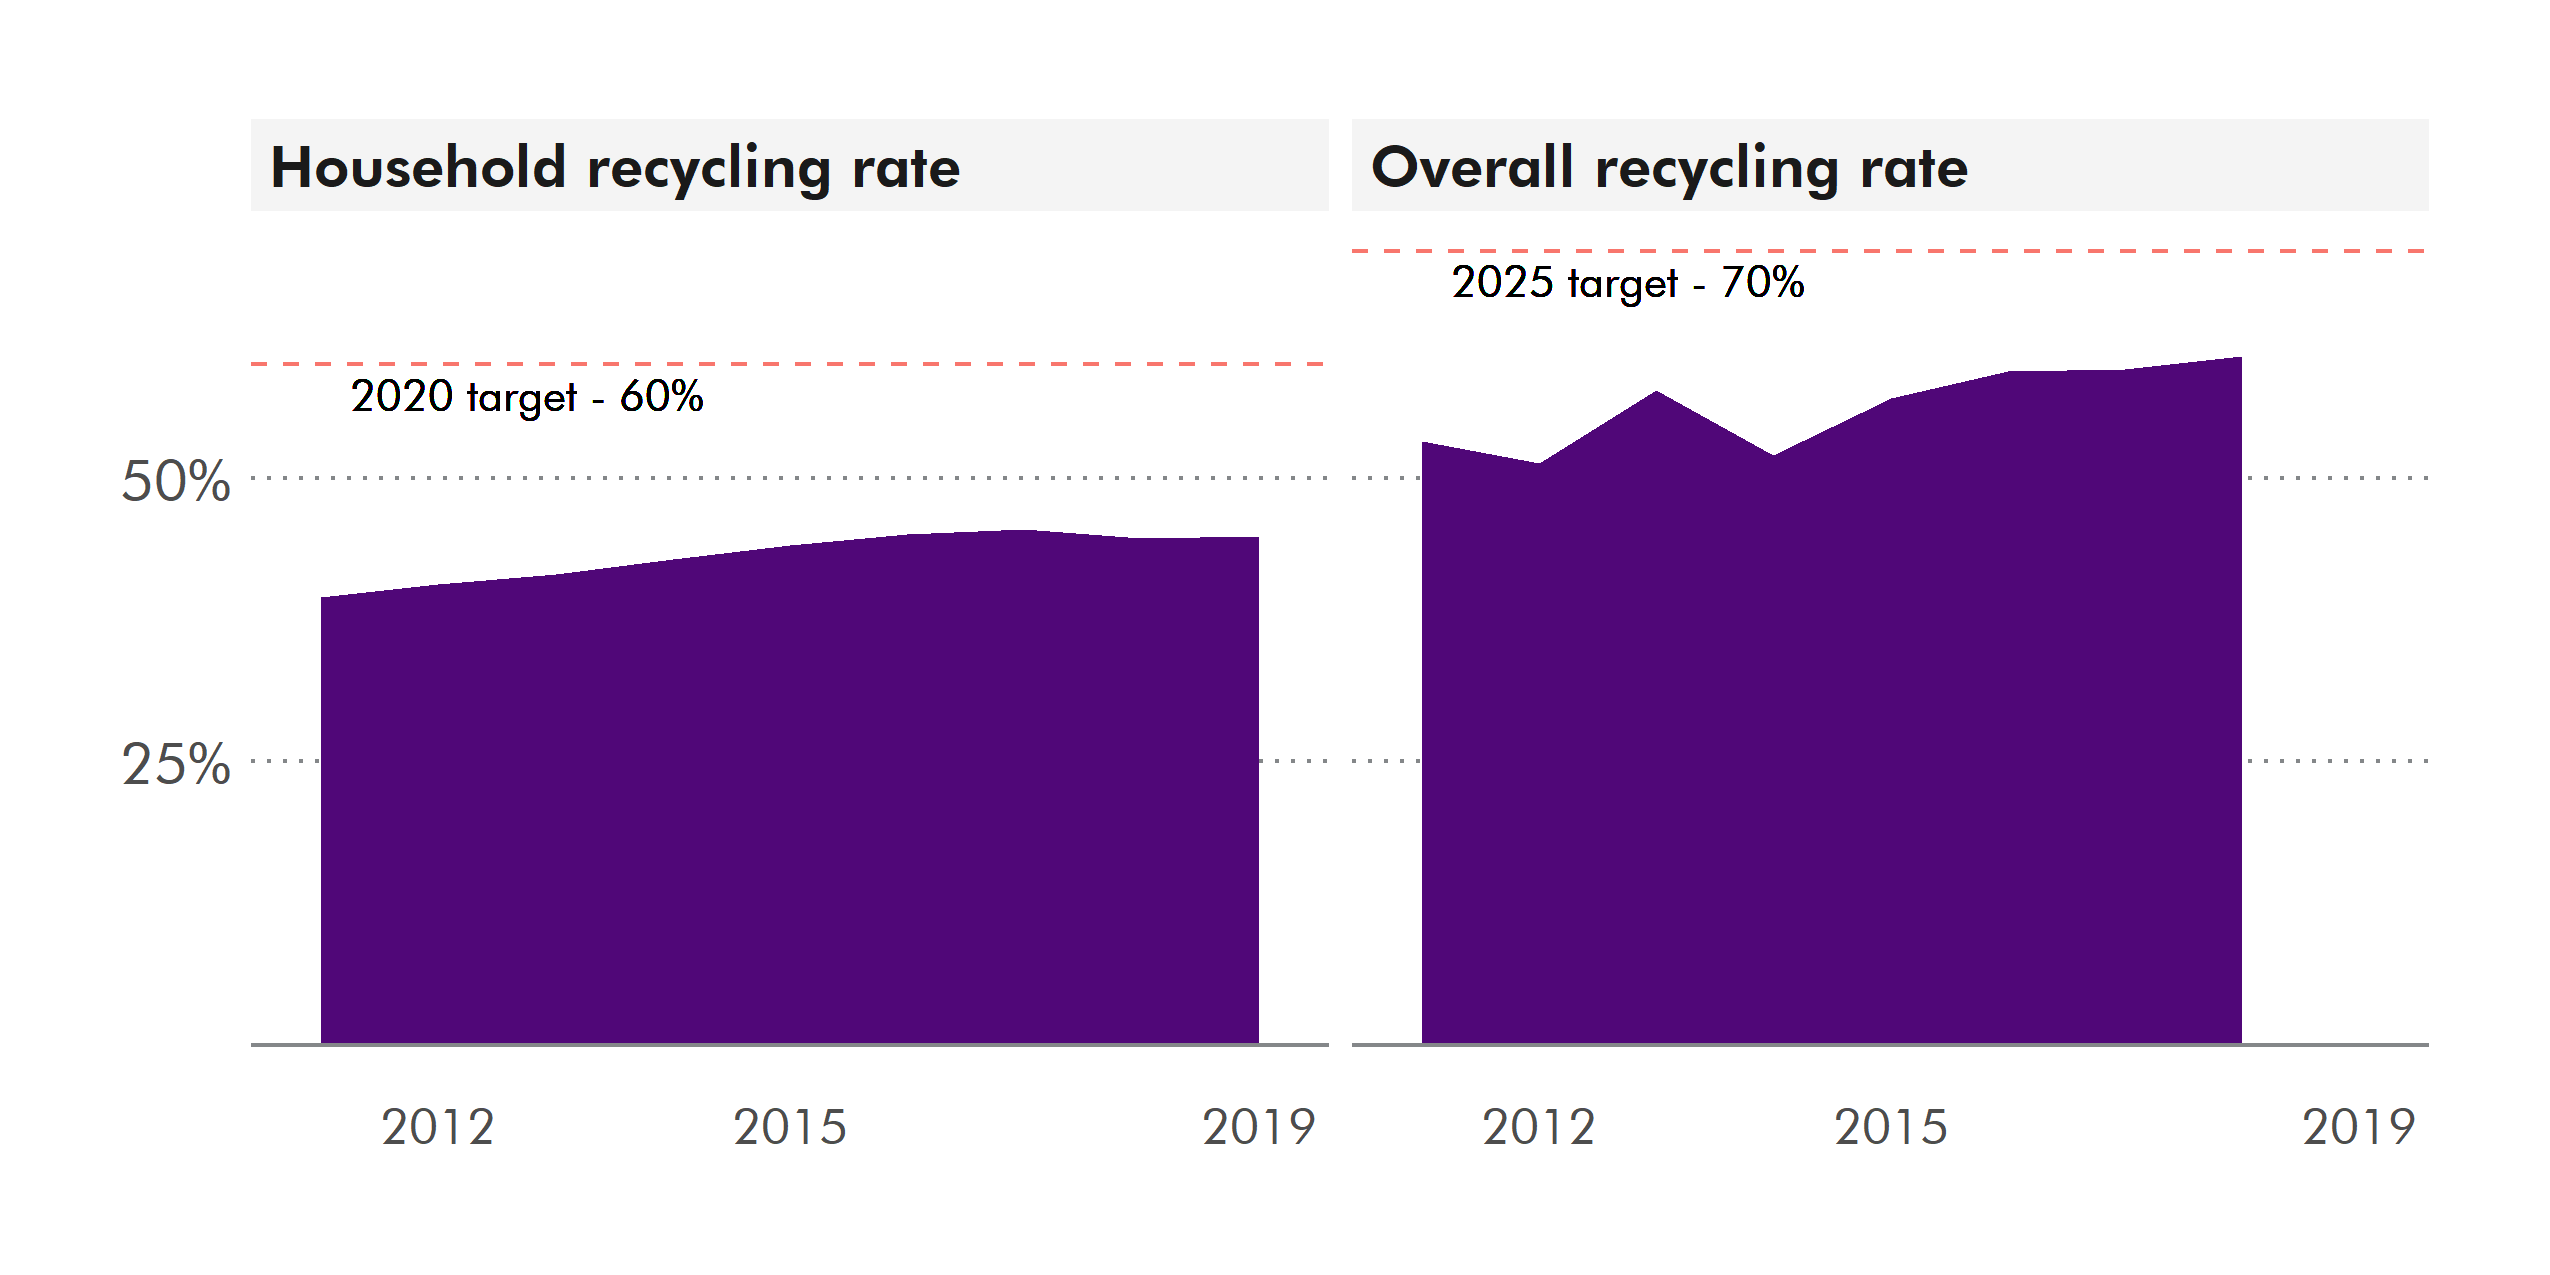 The recycling rate for all waste in 2018 was 60.7%, an increase from 59.6% of waste recycled in 2017. In 2018 the household waste recycling rate was 44.7%, a decrease from the 45.5% rate achieved in 2017.